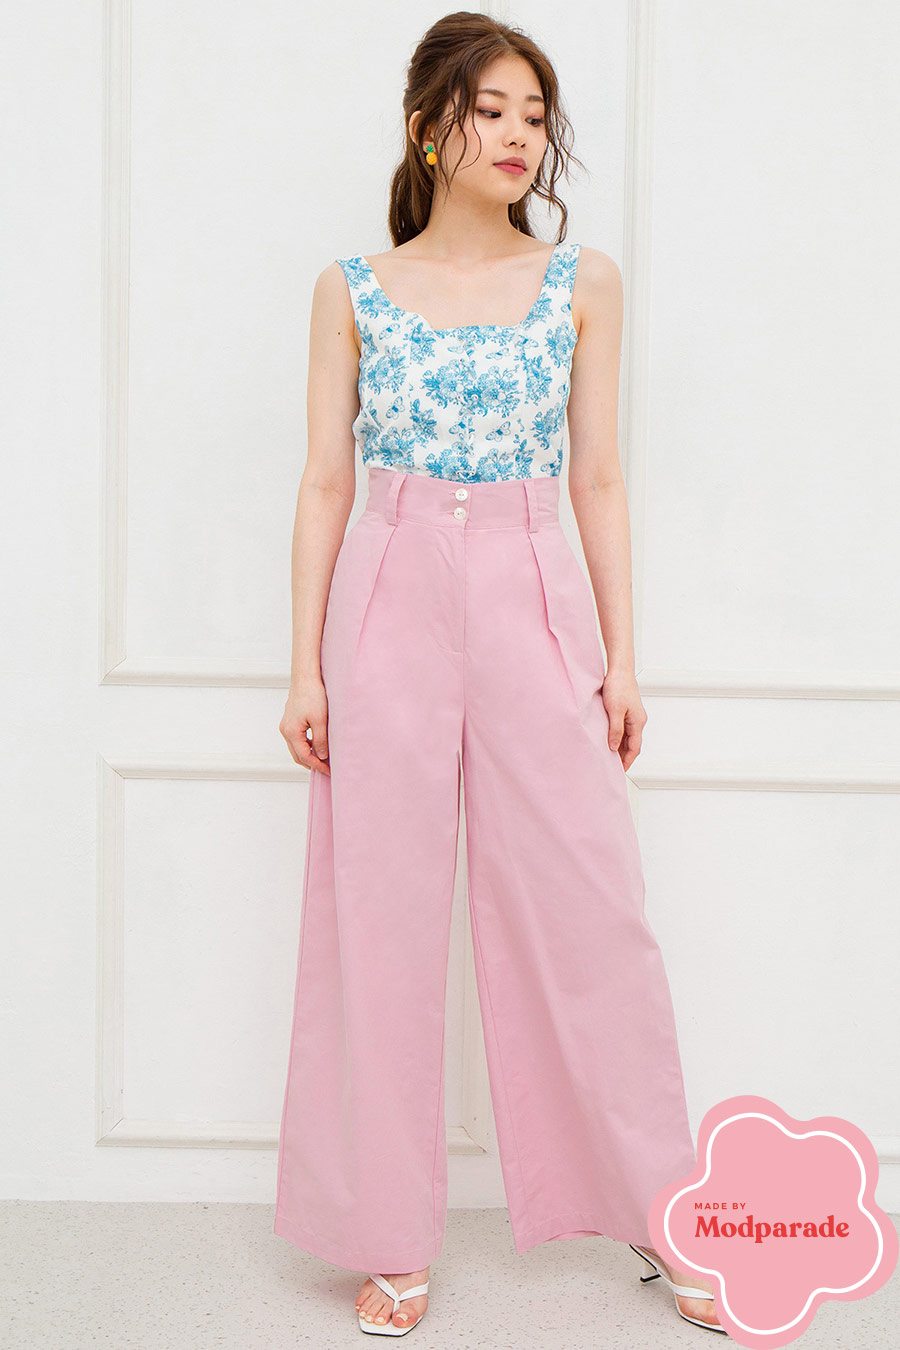 DANIELE PANTS - COTTON CANDY [BY MODPARADE]